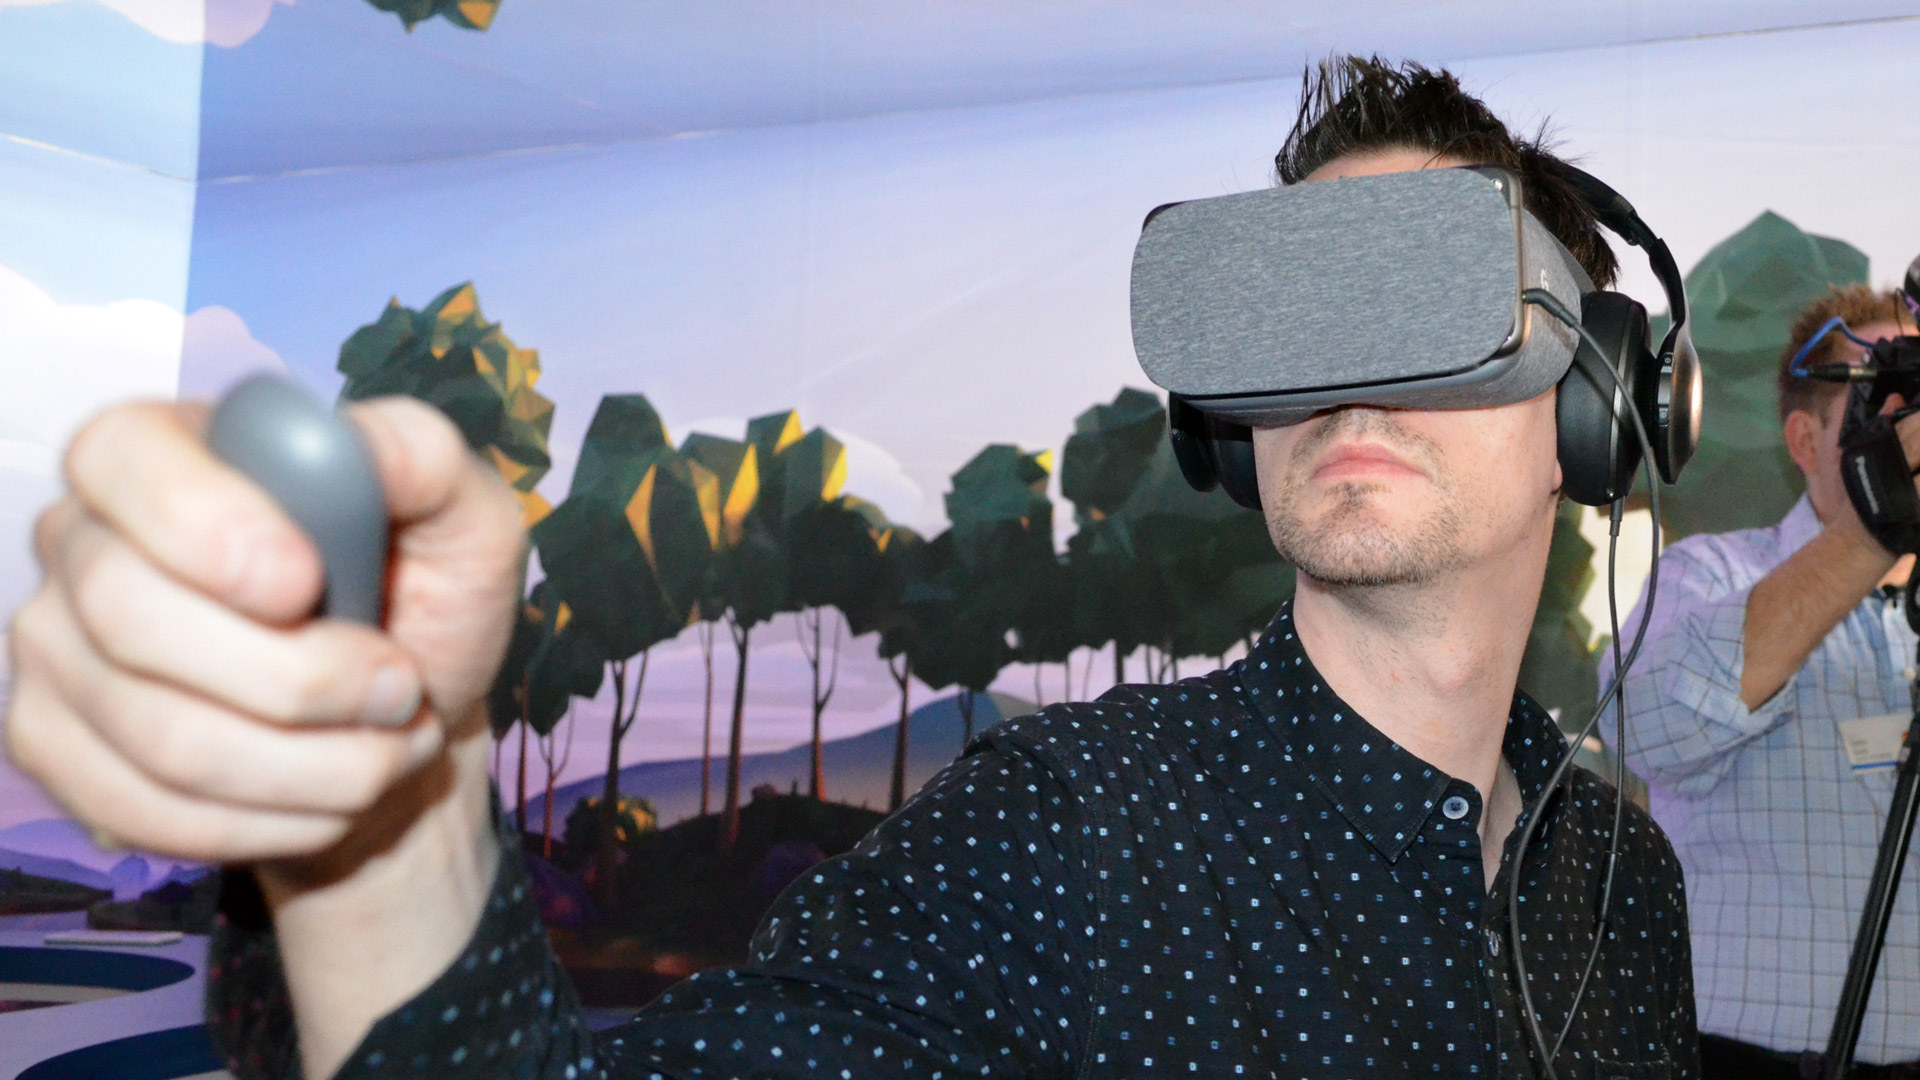 Someone from Road to VR using a daydream headset... look how the headset seems classy...